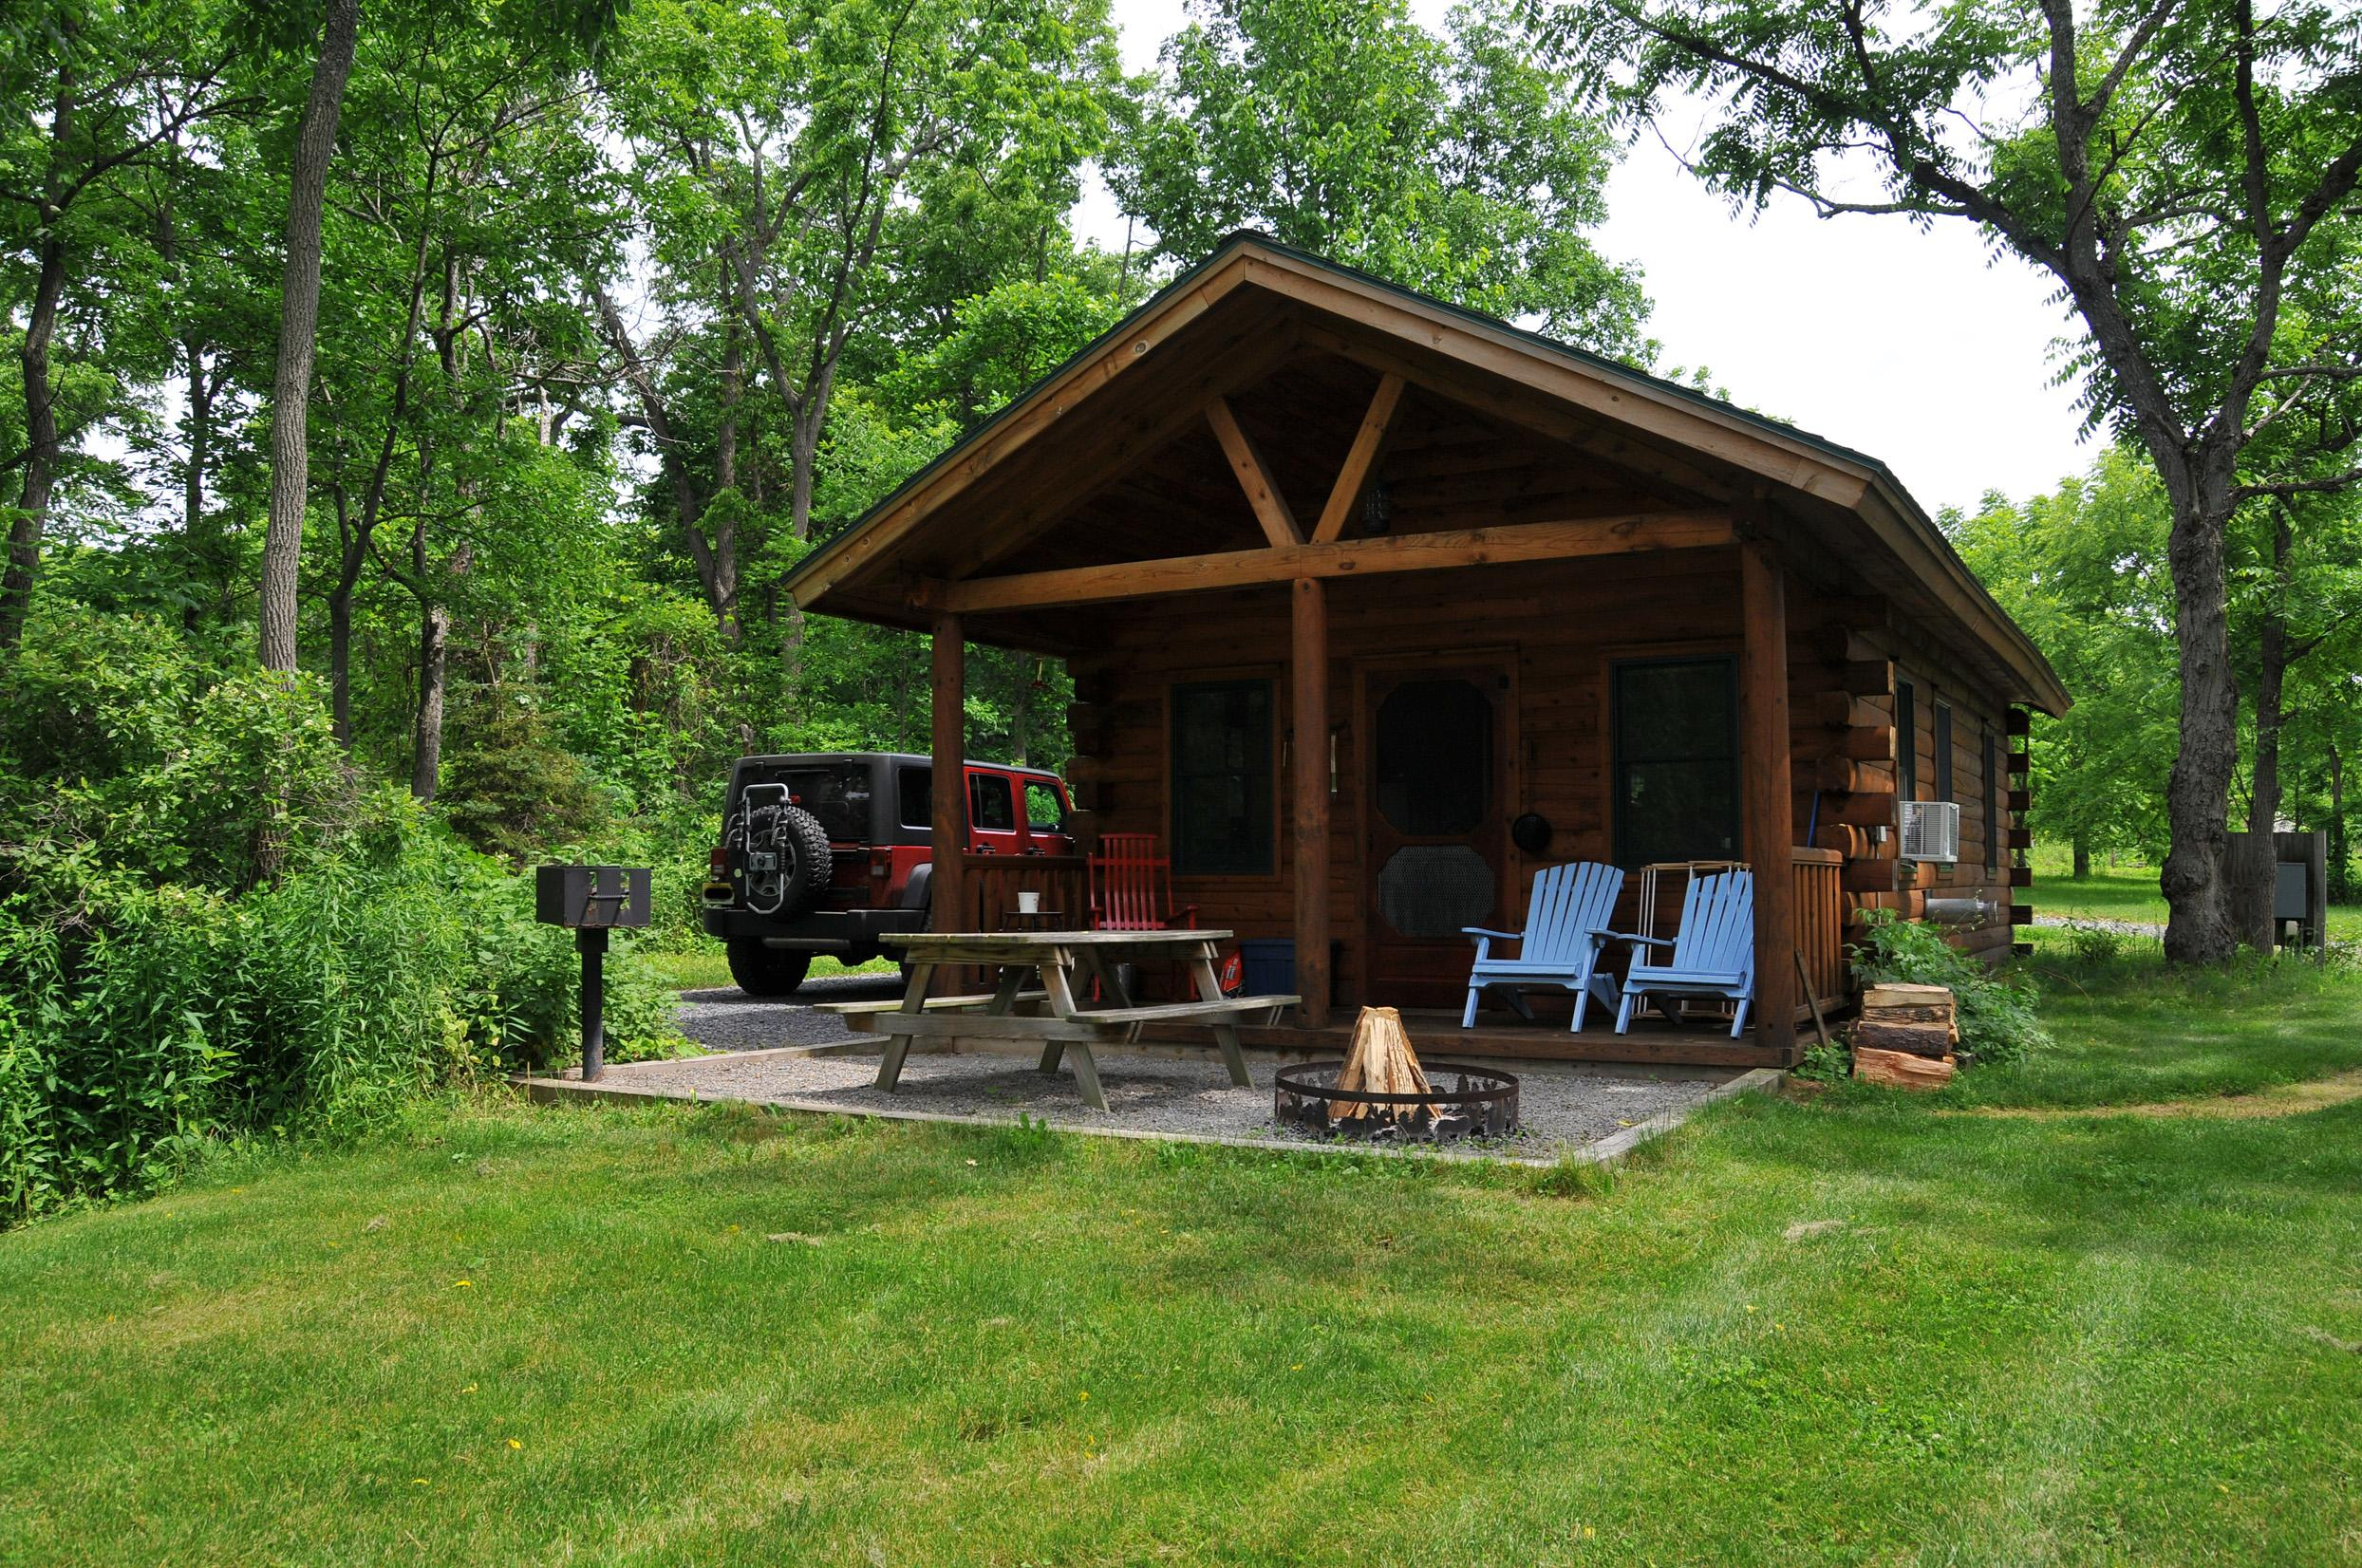 Mill Creek Cabins In New York Is A Great Finger Lakes Getaway